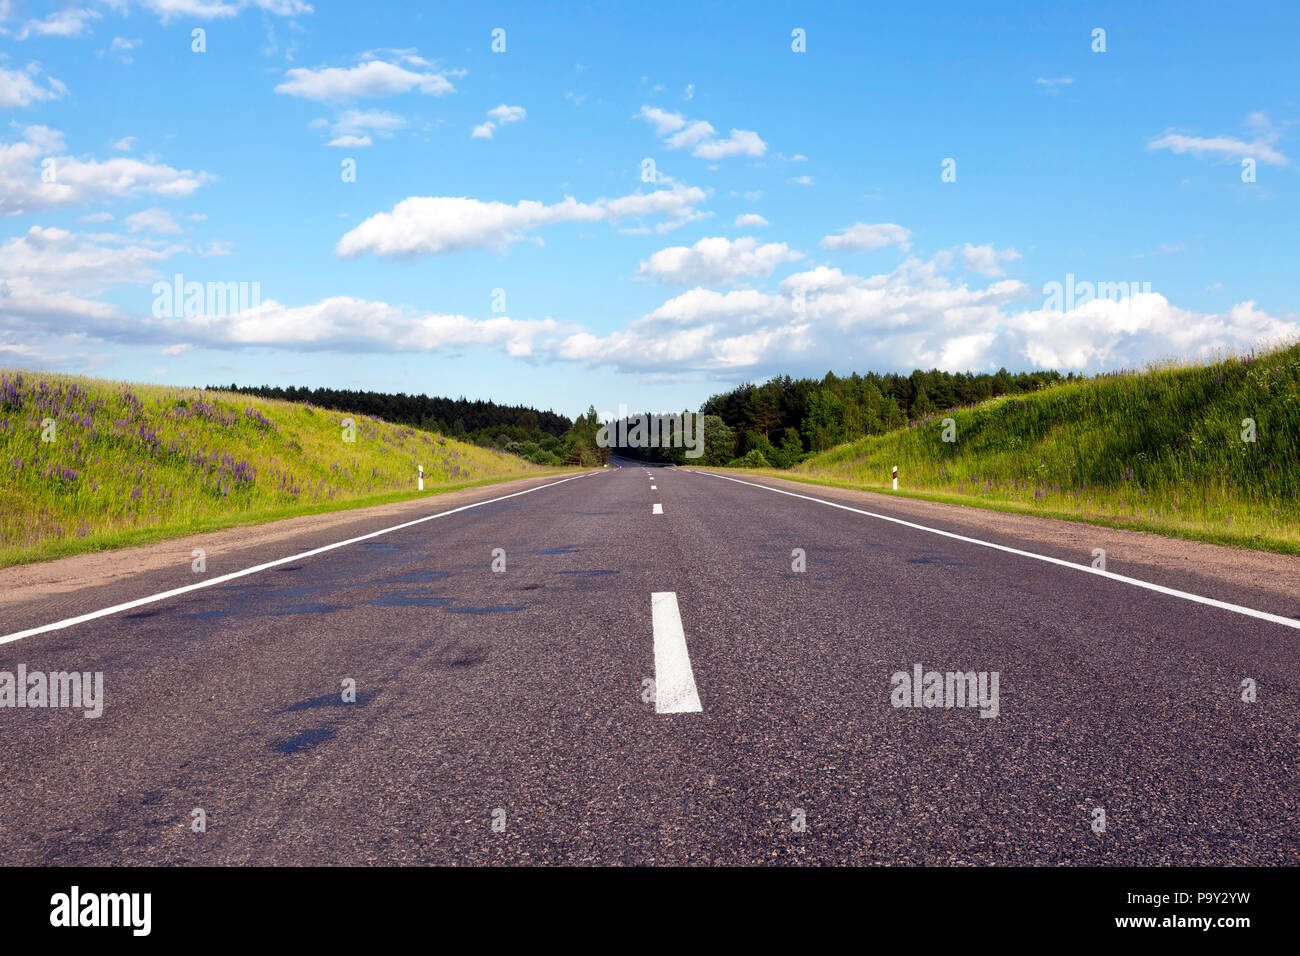 a wide road of asphalt built through a forest with different trees, sunny weather with a blue sky Stock Photo